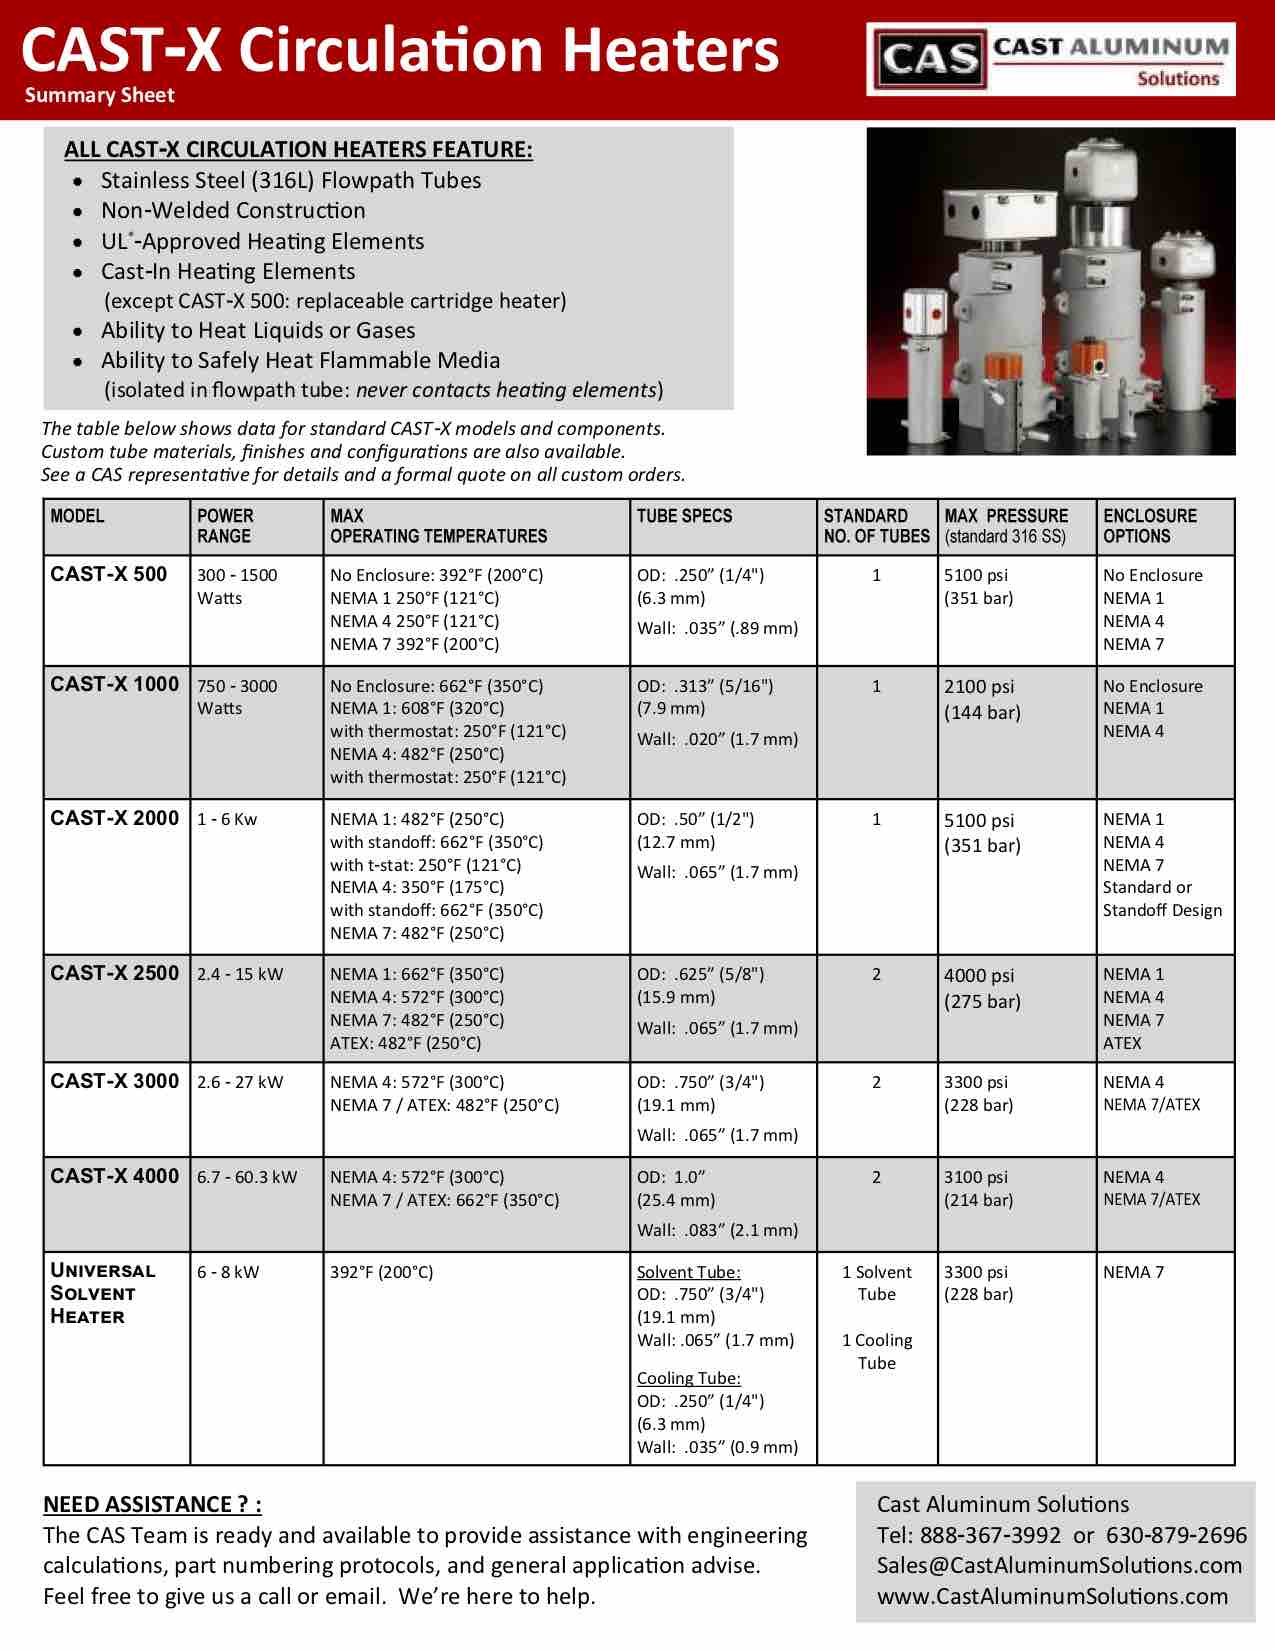 CAST X Circulation Heaters Summary Cast Aluminum Solutions (dragged)